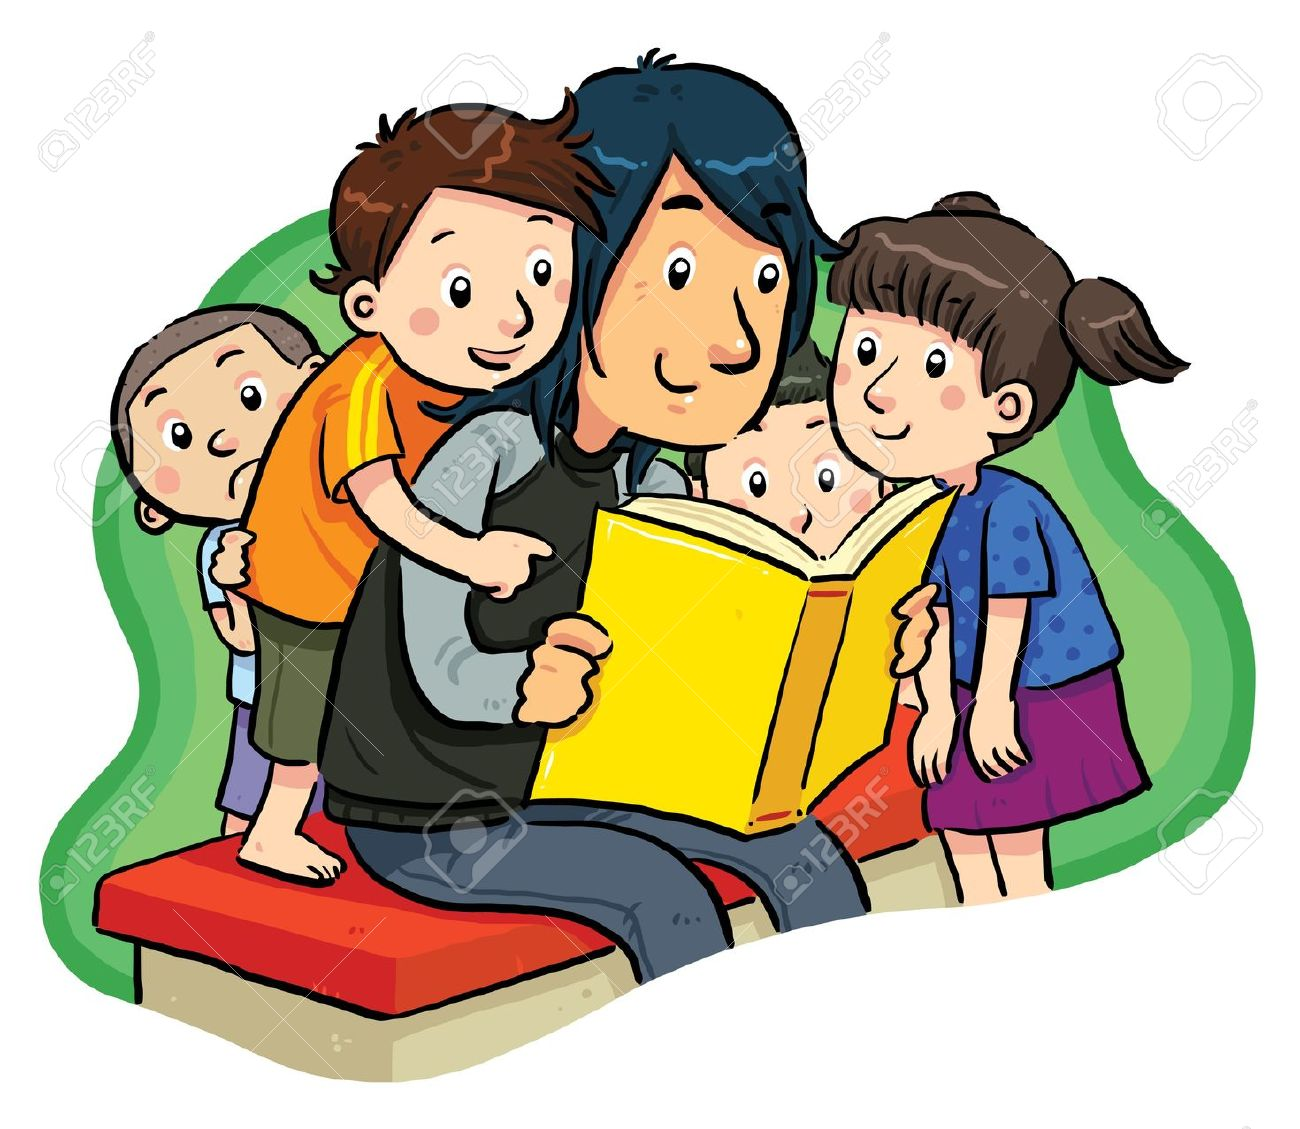 storyteller clipart clipground Reading Together Clip Art Reading in Bed Clip Art